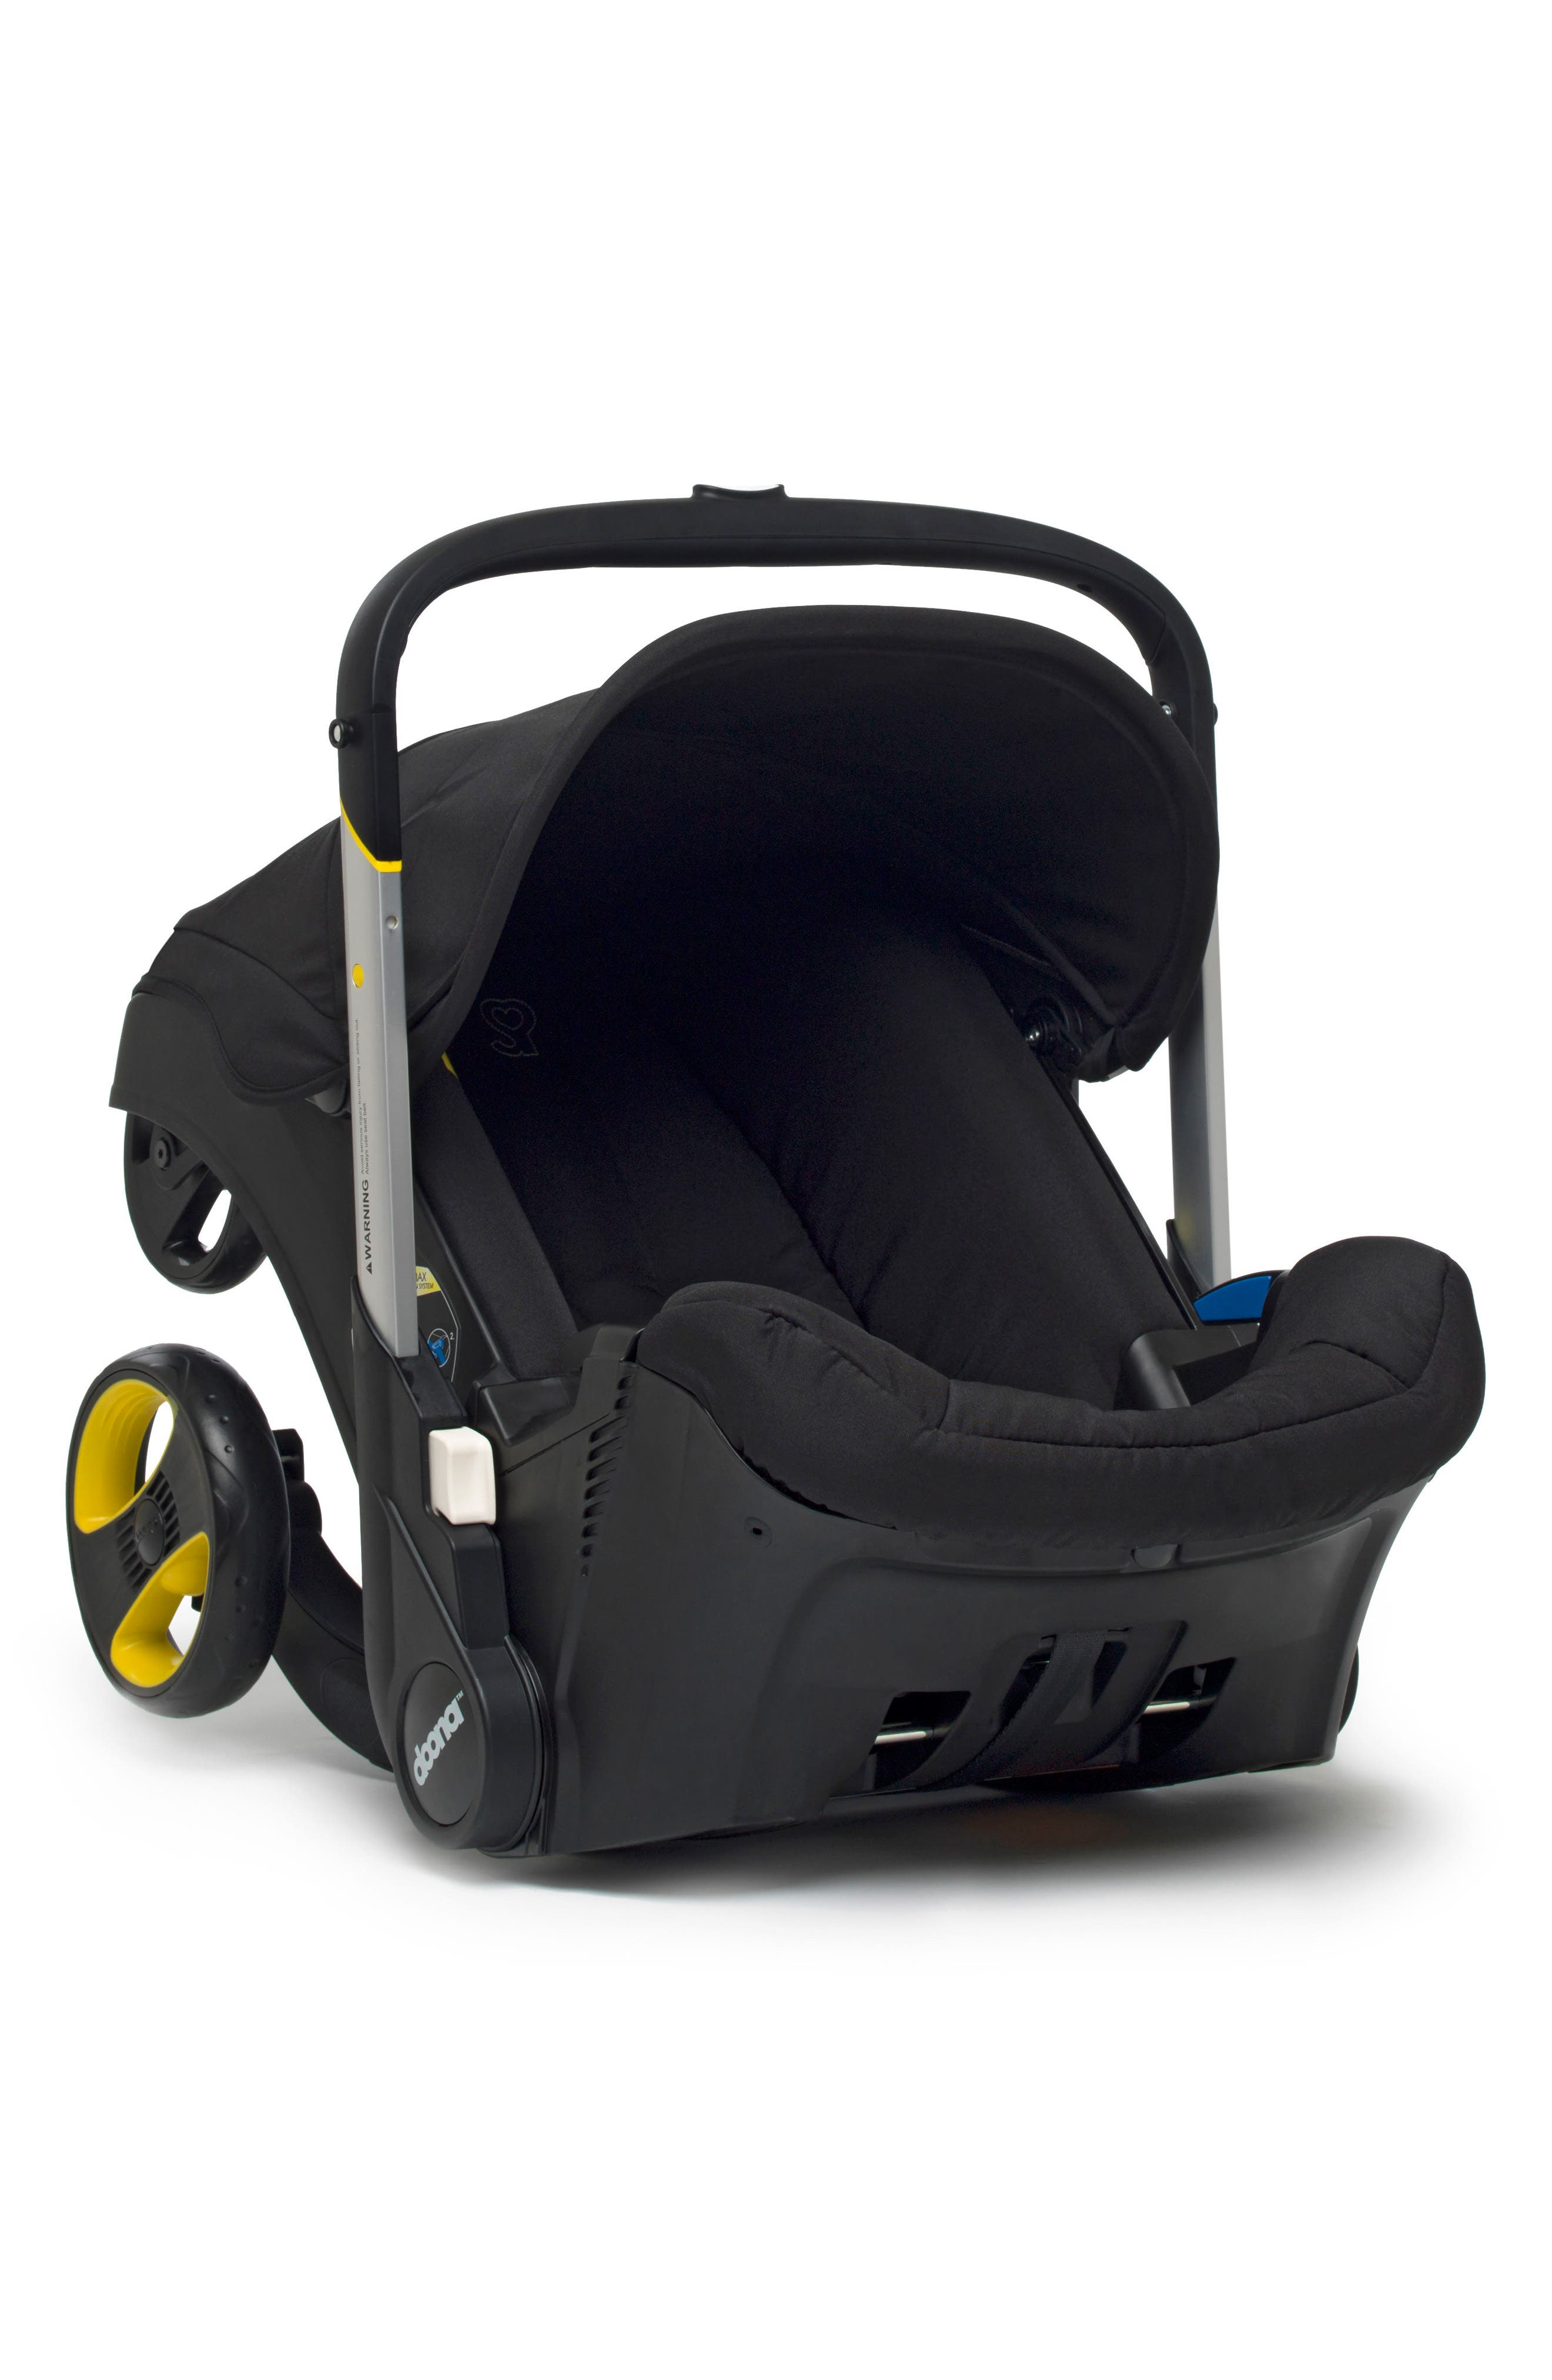 Convertible Infant Car Seat/Compact Stroller System,                             Alternate thumbnail 2, color,                             Black/ Night